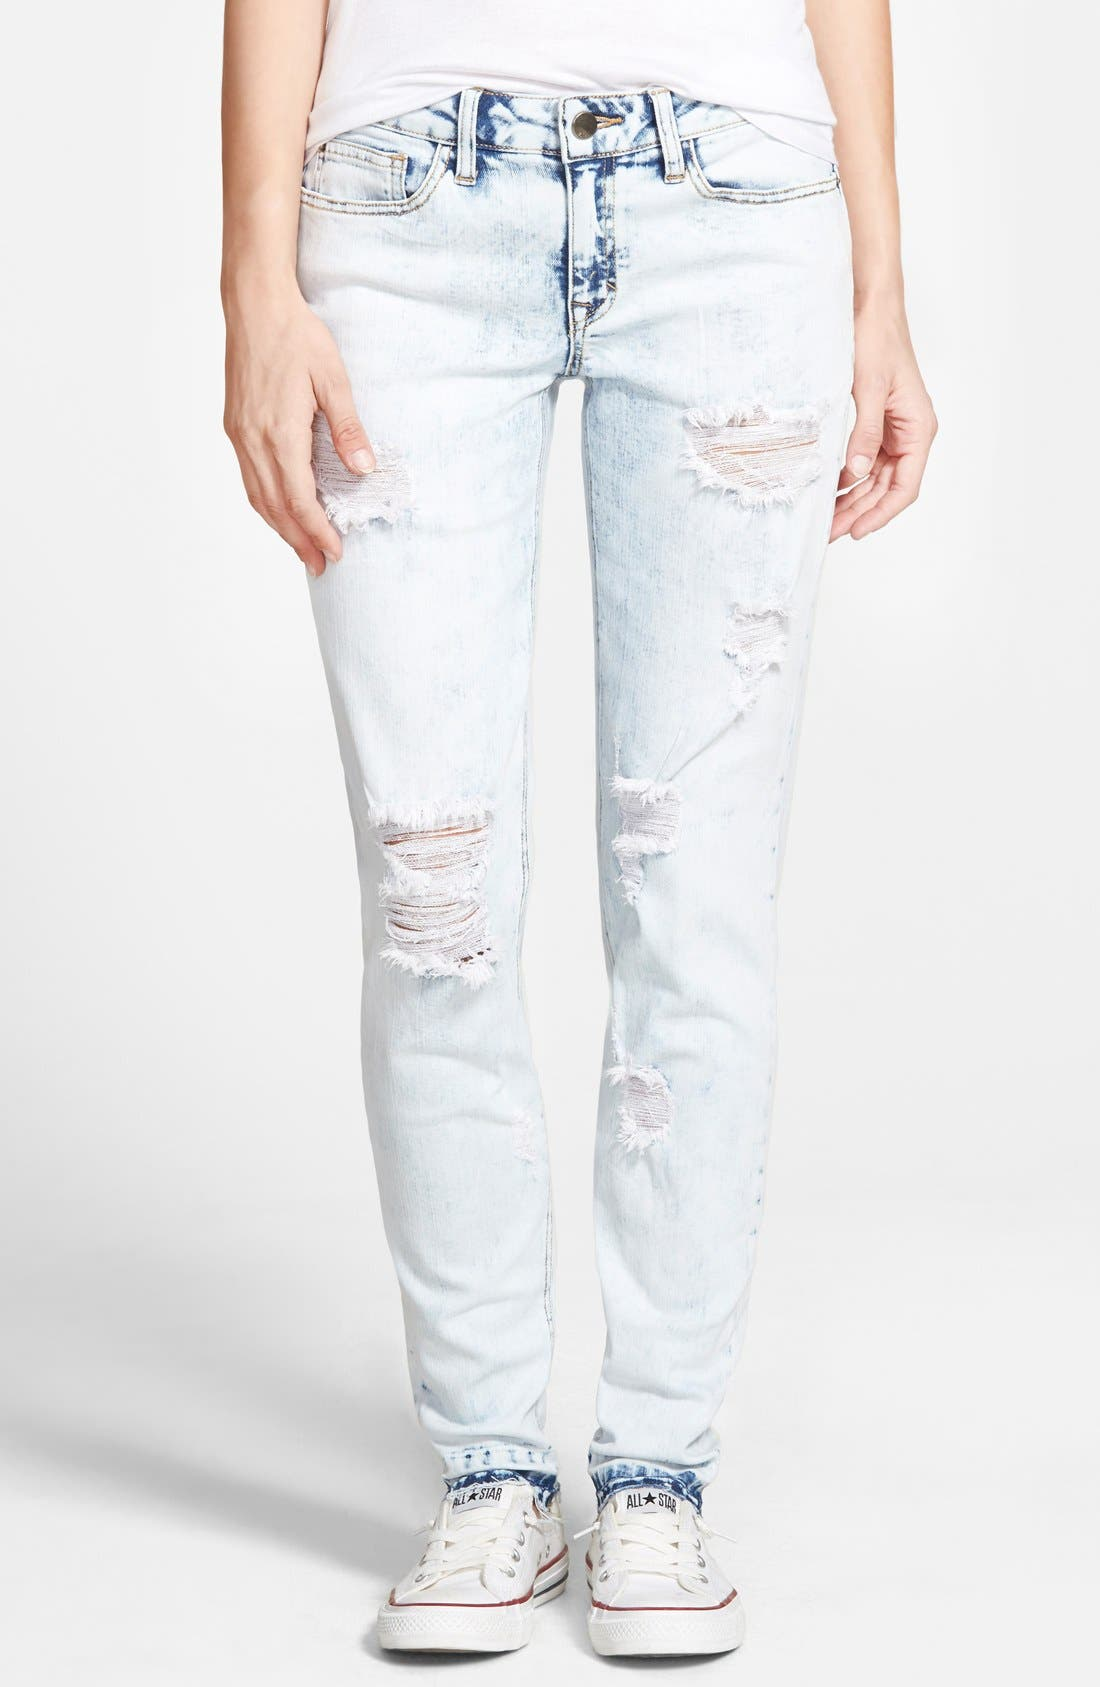 Alternate Image 1 Selected - SP Black 'Release Hem' Destroyed Skinny Jeans (Light Wash)